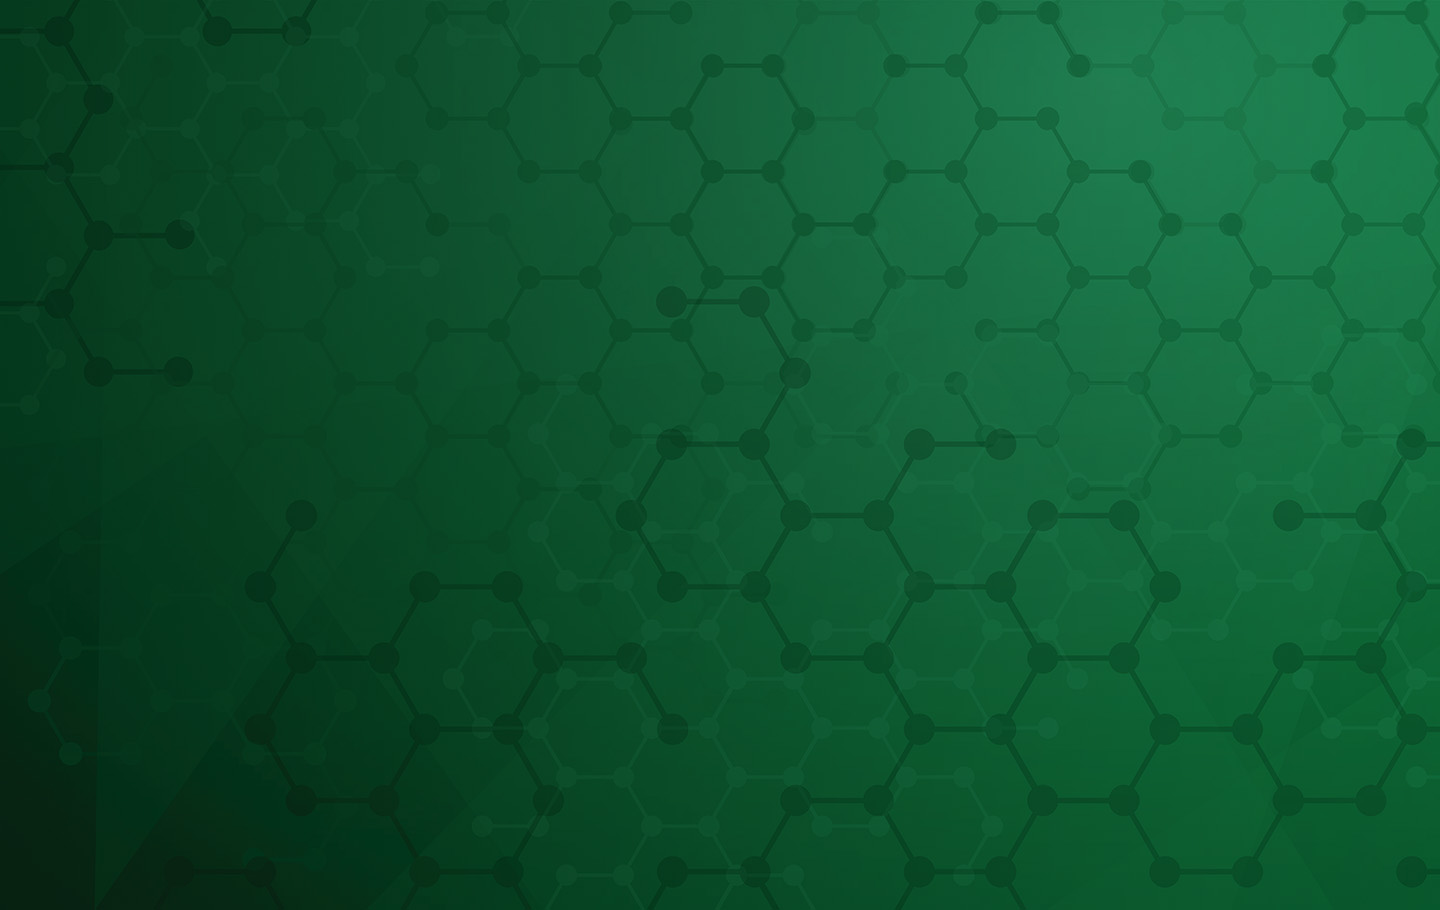 Green Hex Background